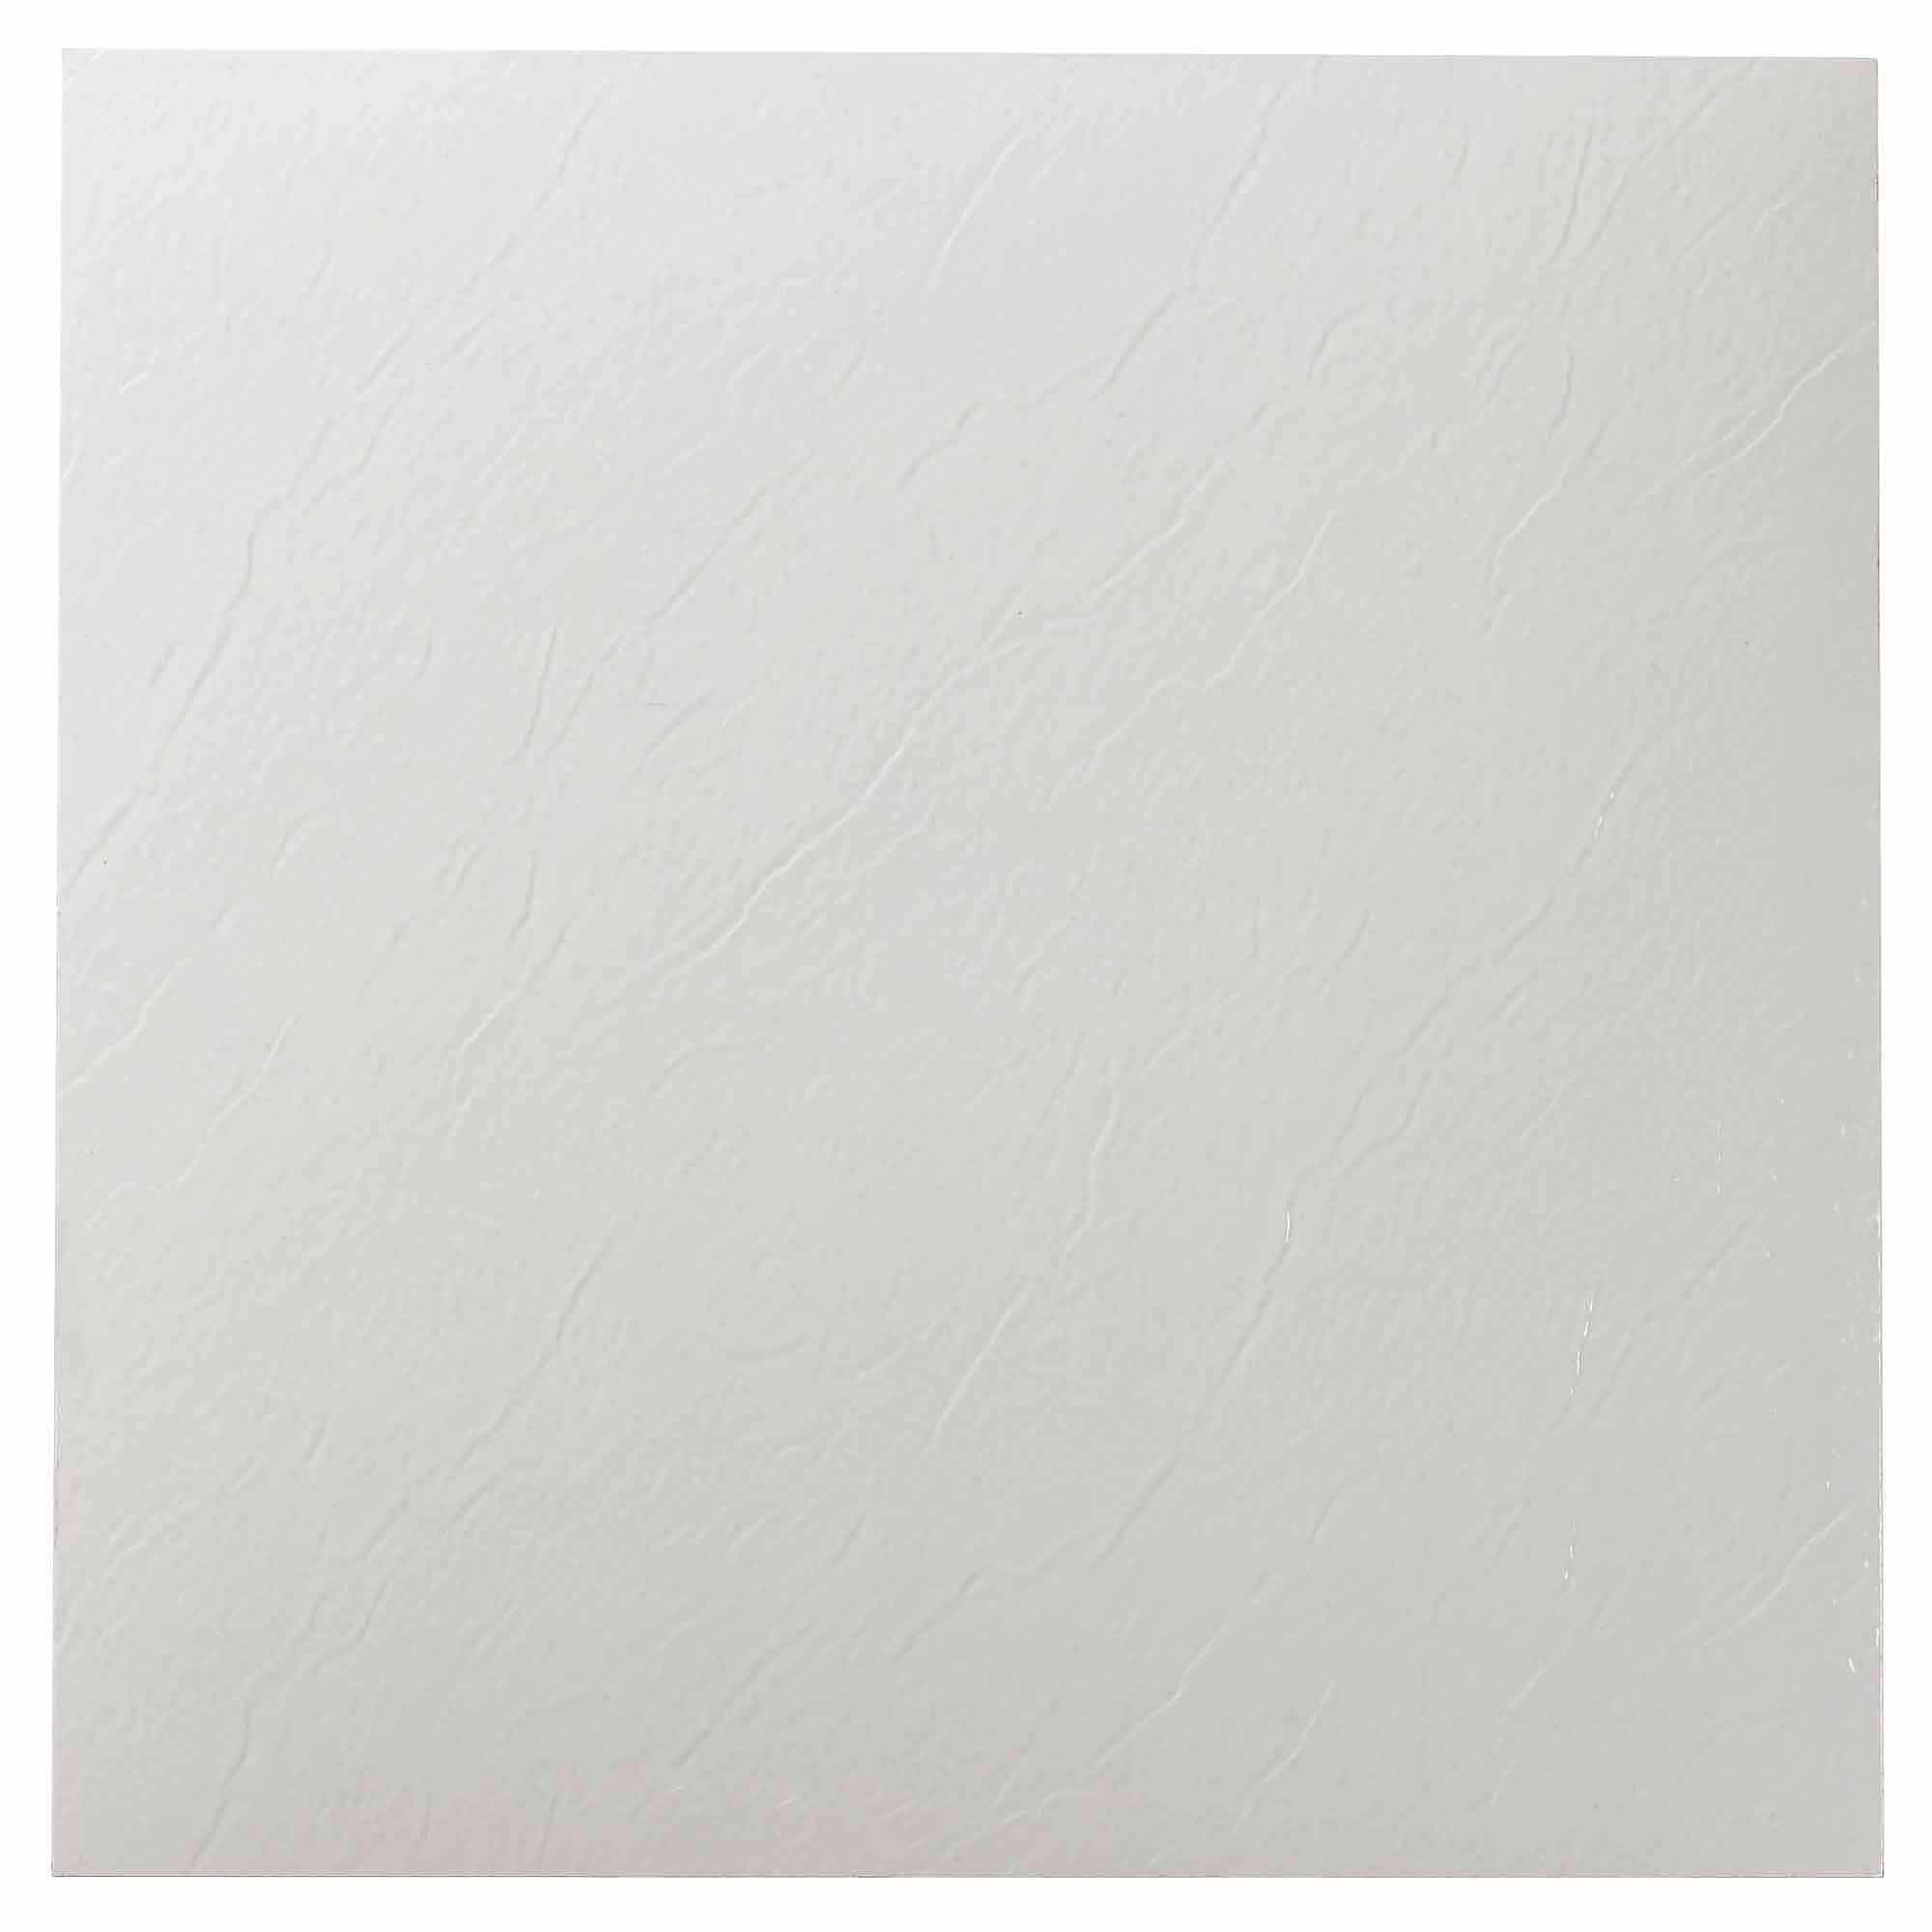 Vinyl Floor Tile vesdura vinyl tile 12mm pvc peel stick sterling collection cottage Nexus White 12x12 Self Adhesive Vinyl Floor Tile 20 Tiles20 Sqft Walmartcom